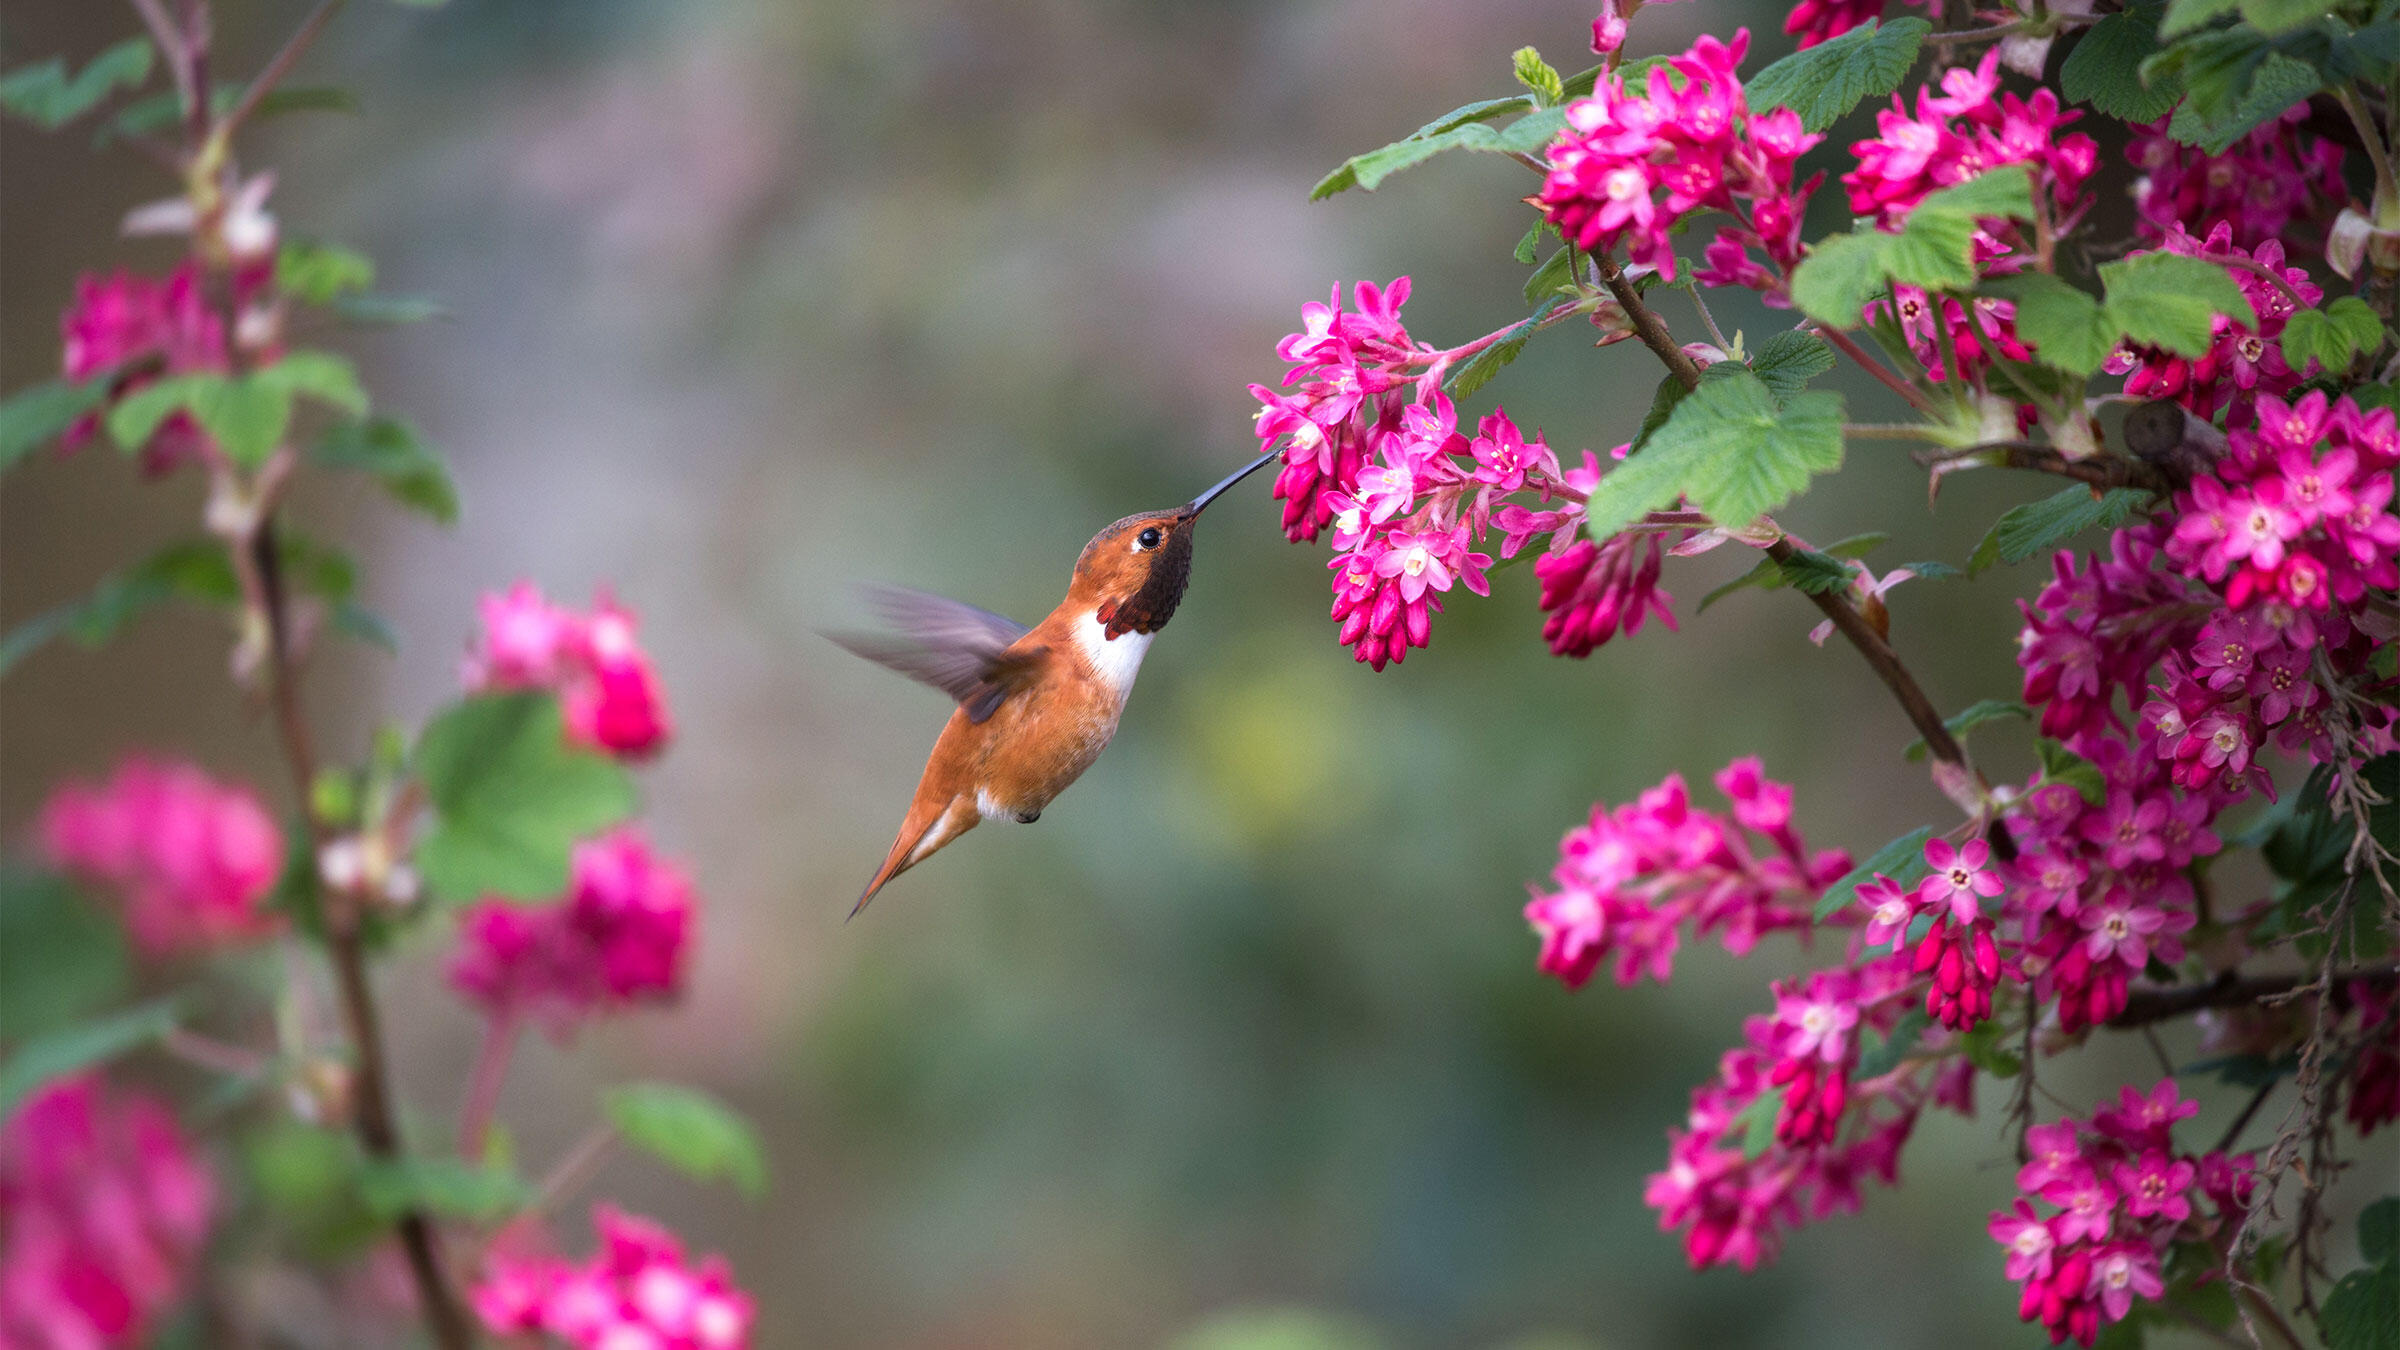 Rufous Hummingbird on red-flowering currant, a plant native to the Northwest. iStock